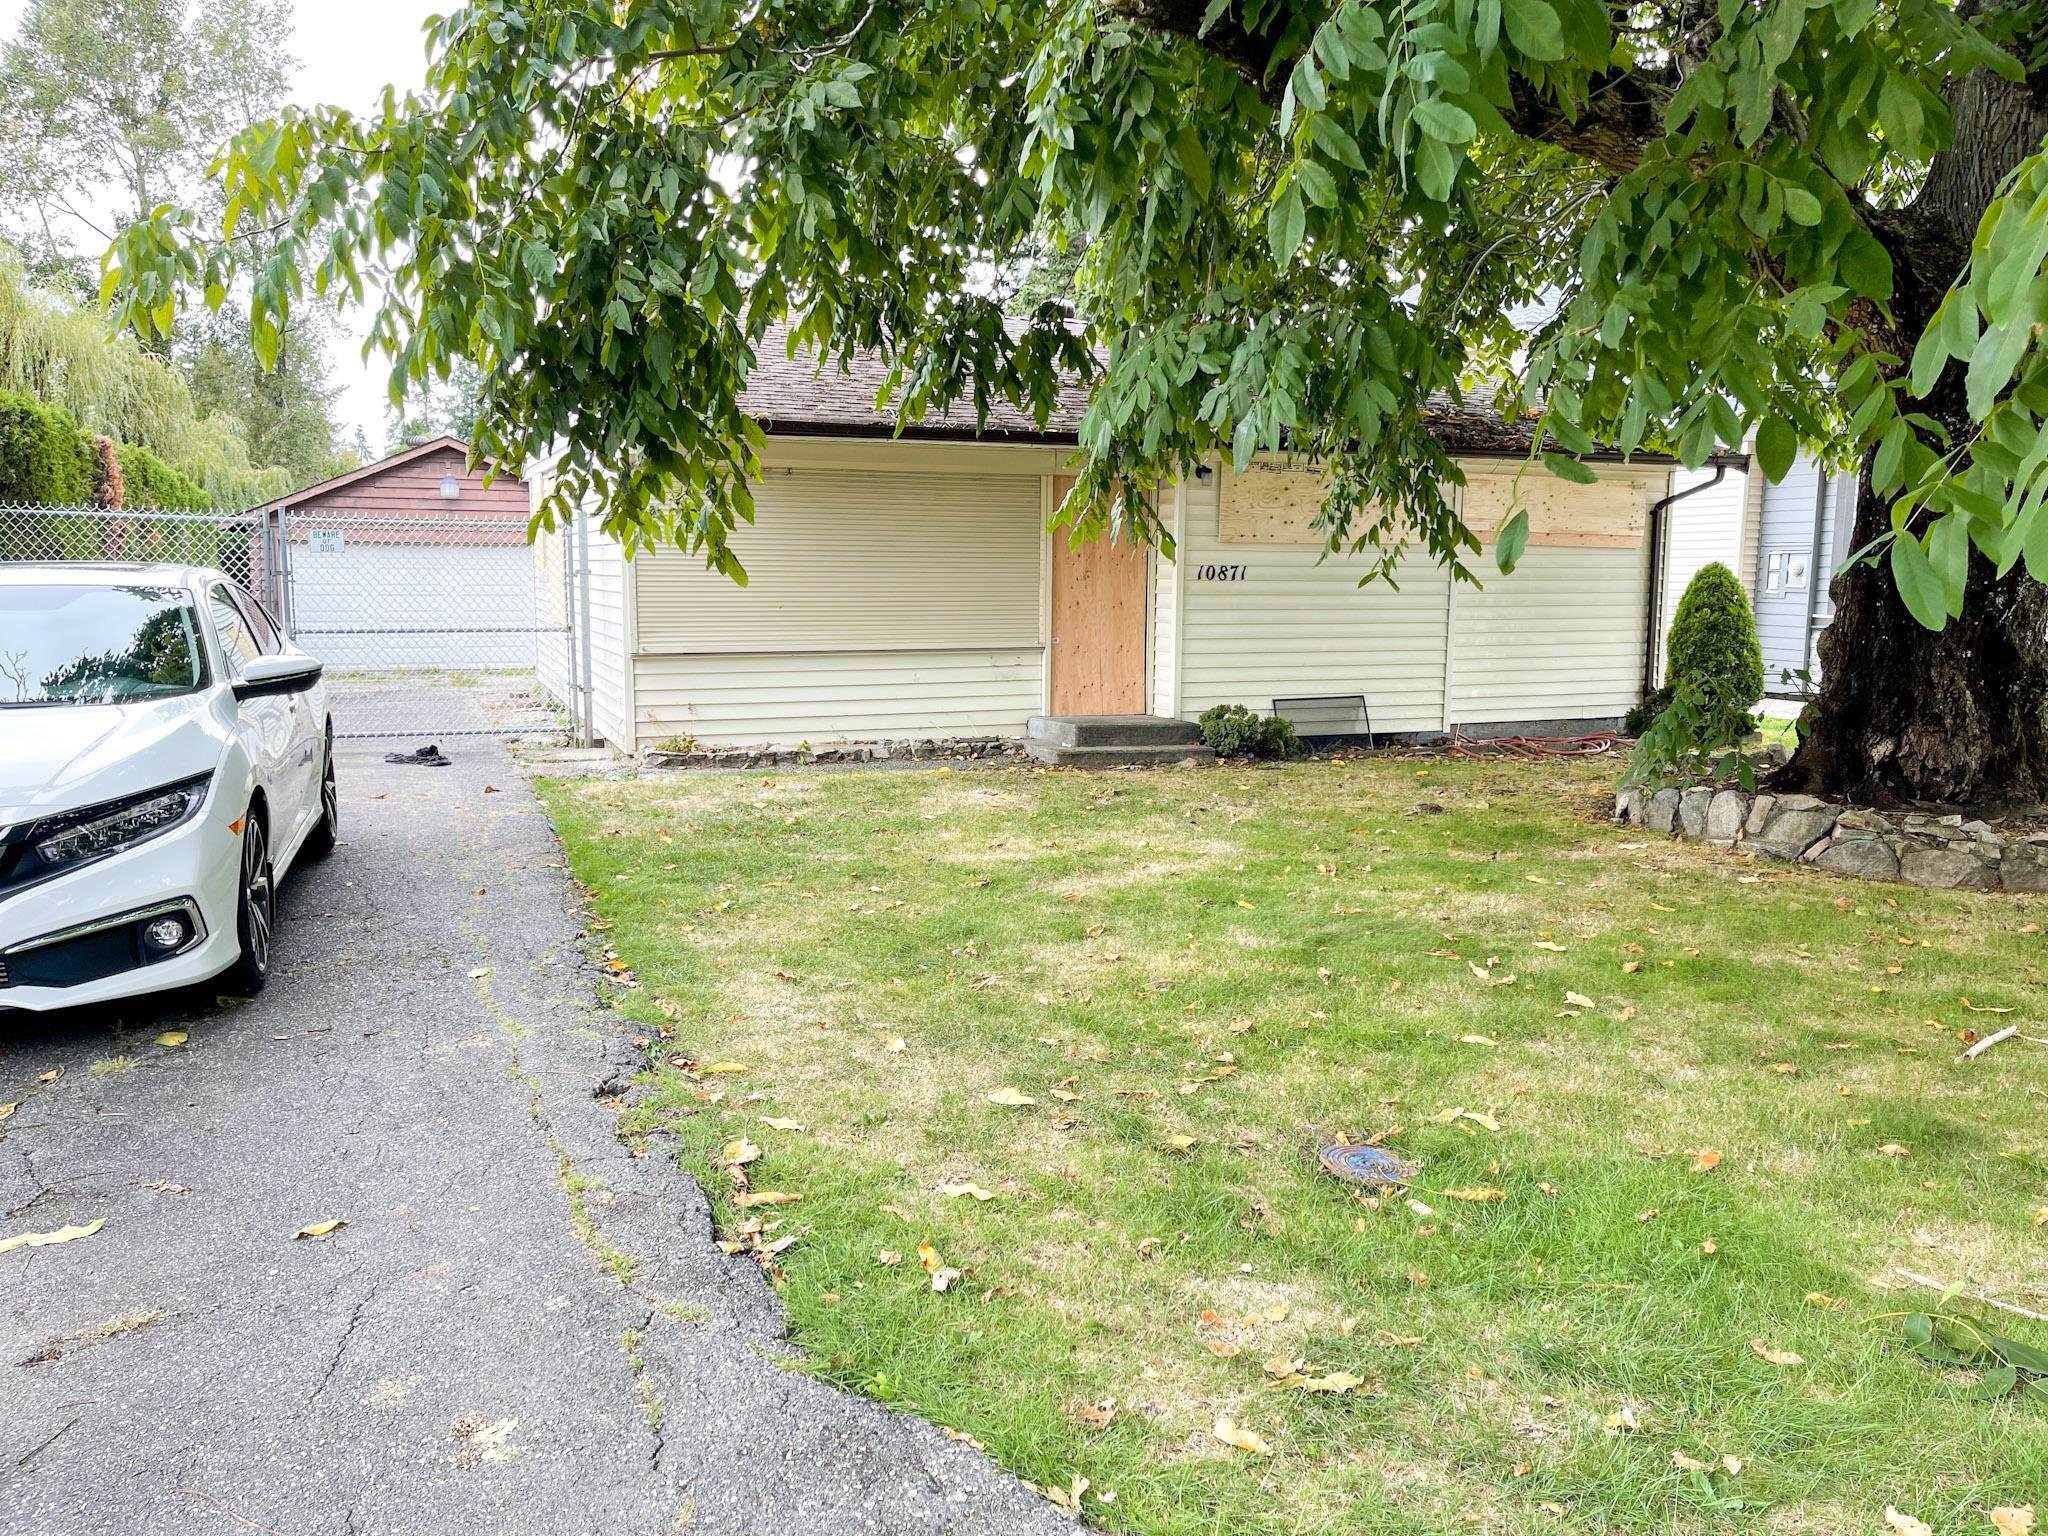 Main Photo: 10871 139A Street in Surrey: Bolivar Heights House for sale (North Surrey)  : MLS®# R2616531